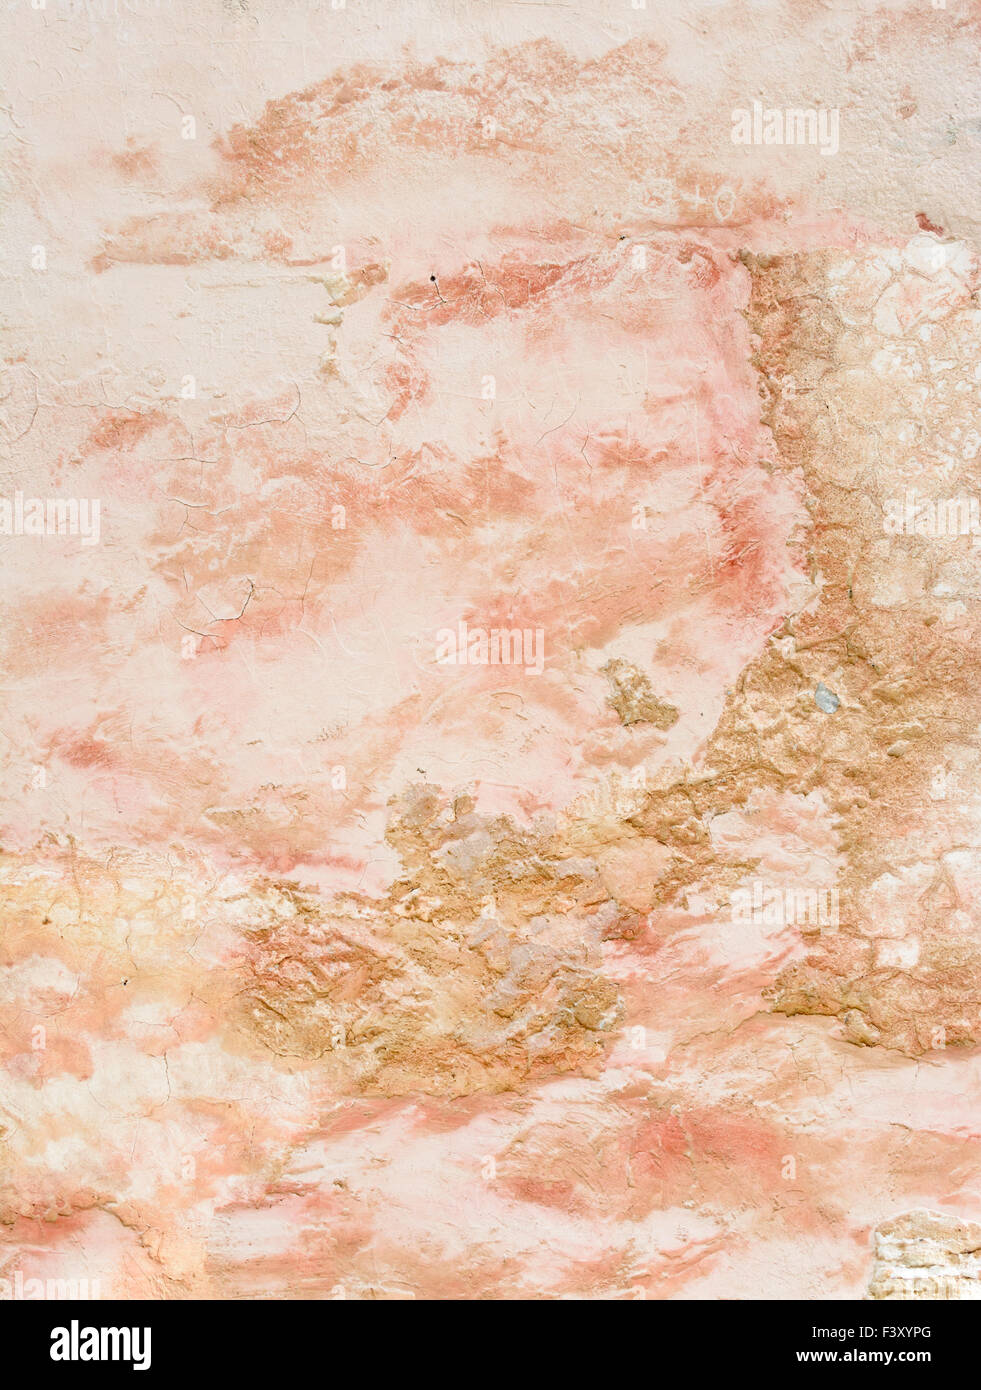 Earthy background in warm colors - Stock Image